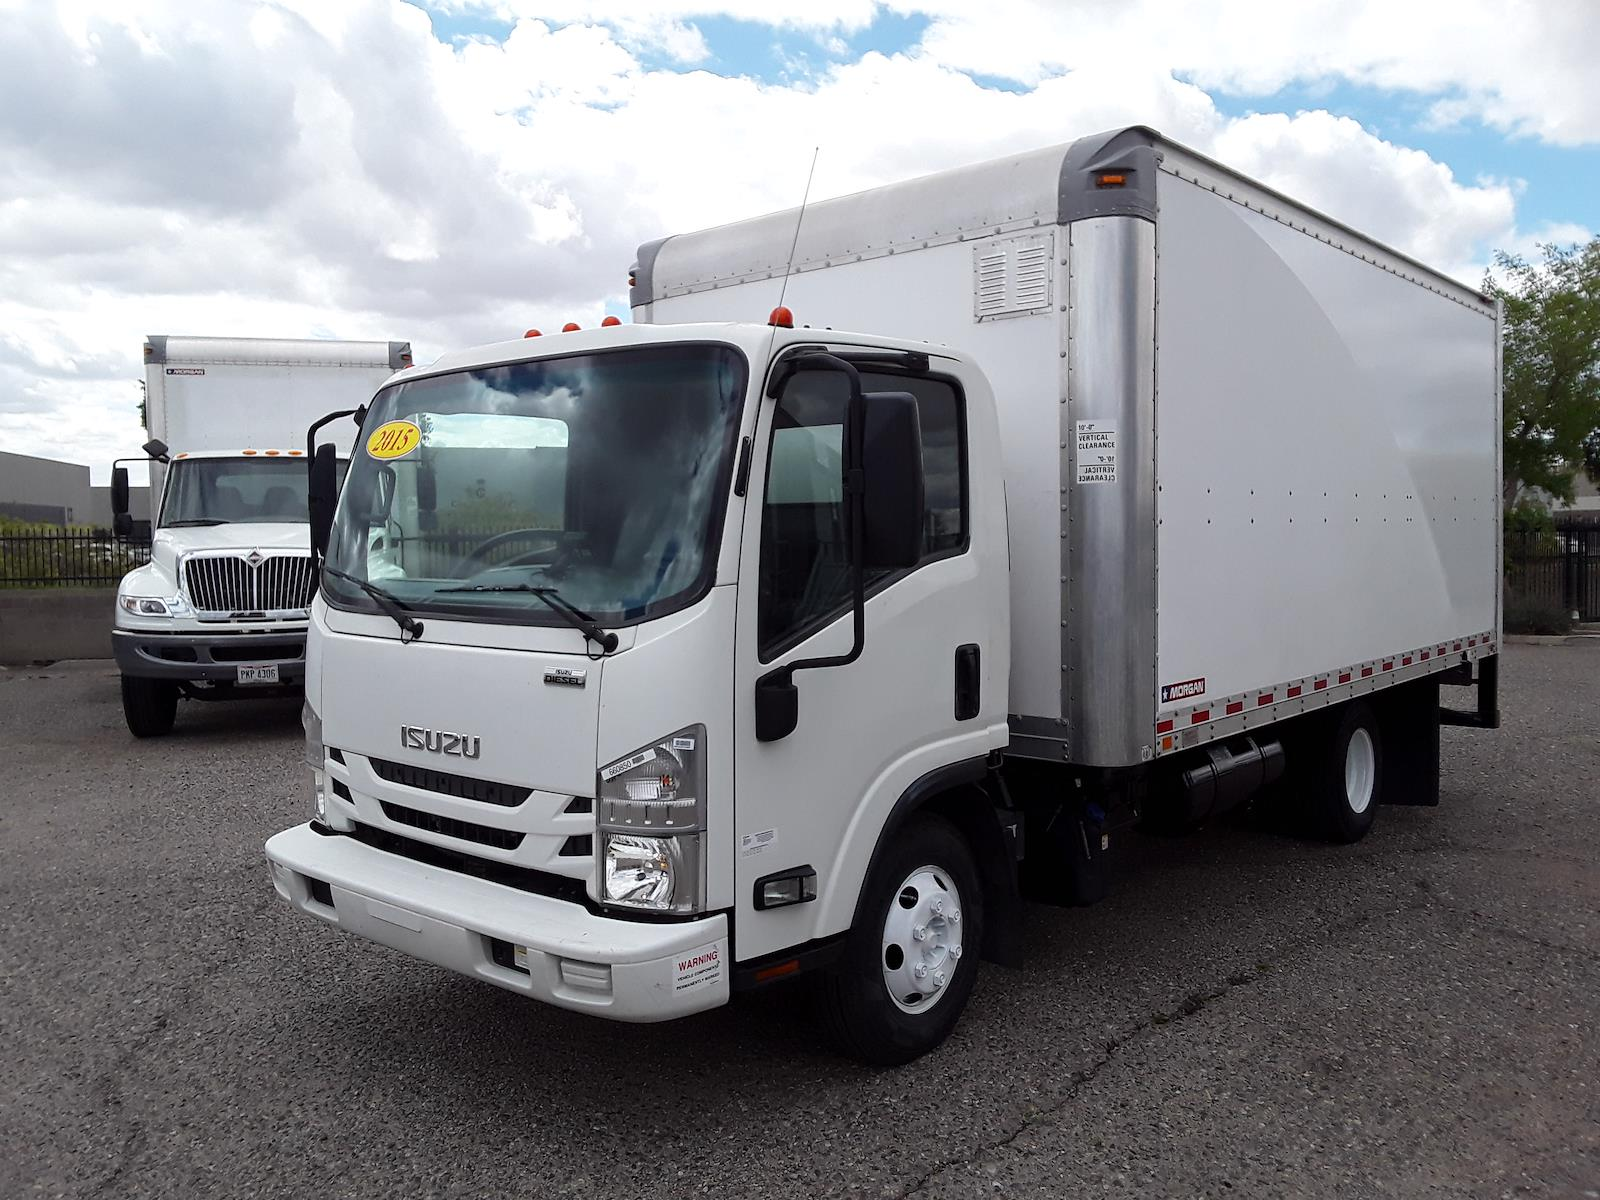 2015 Isuzu NPR Regular Cab 4x2, Dry Freight #660850 - photo 1